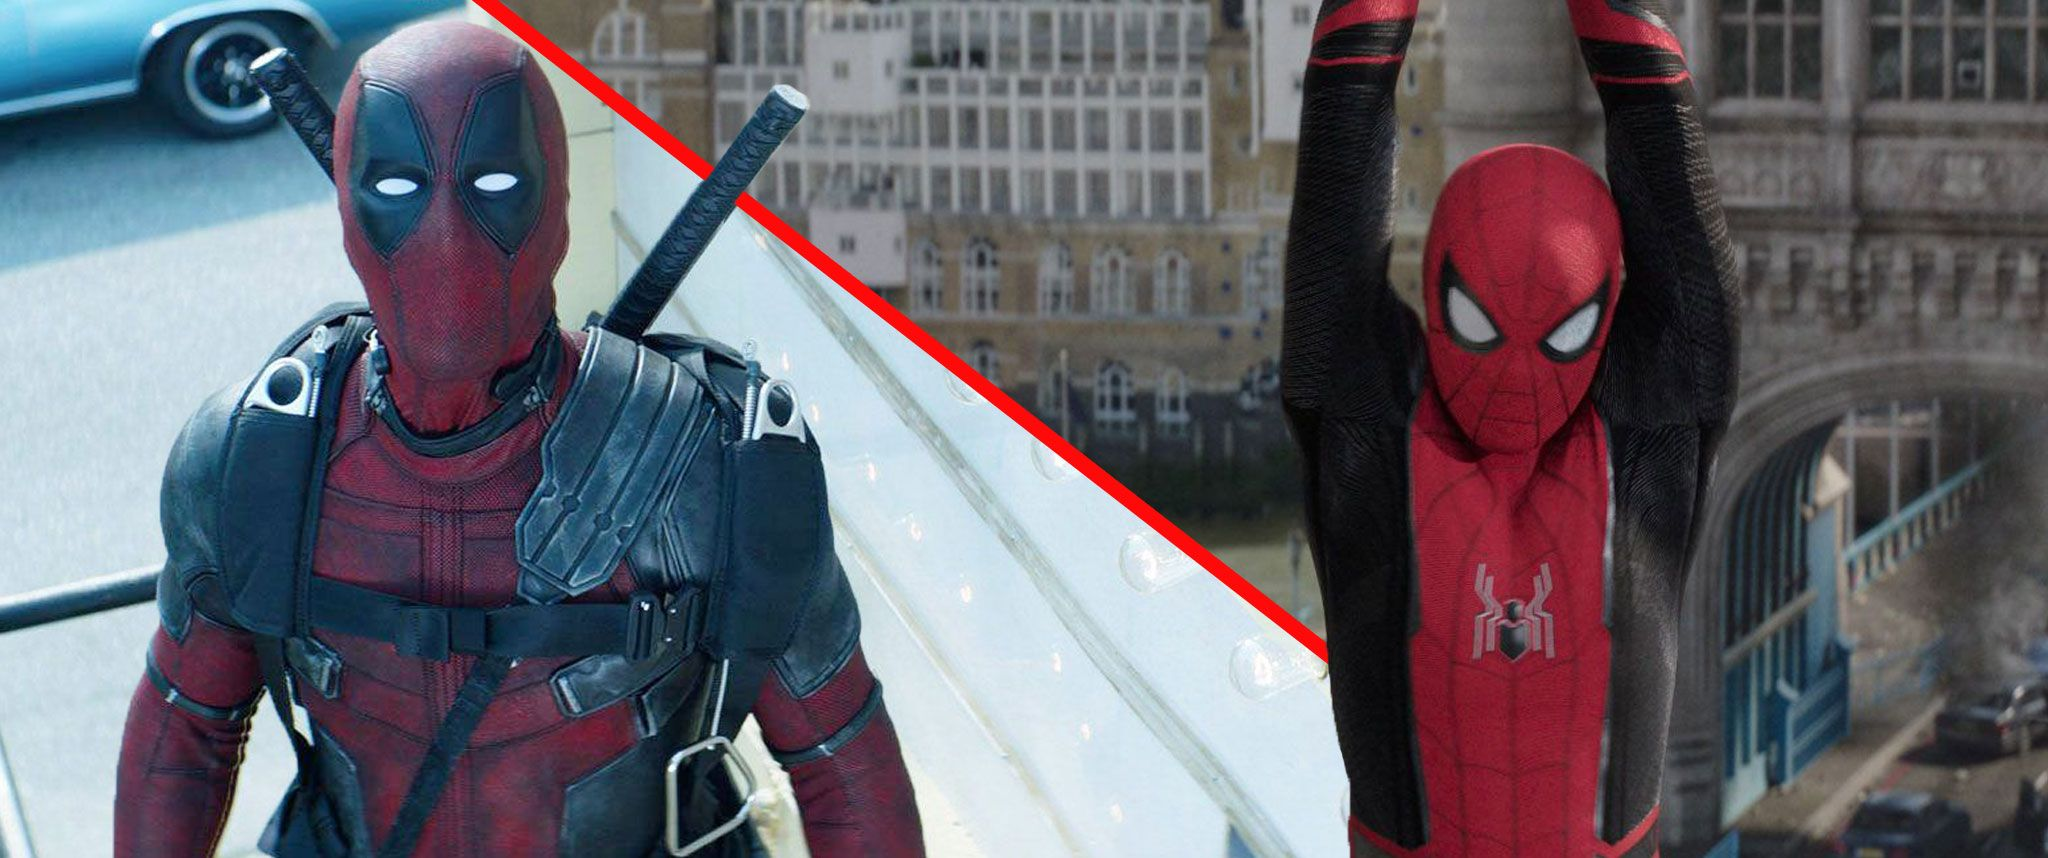 Ryan Reynolds reacts to suggestions Spiderman and Deadpool should team up for a movie